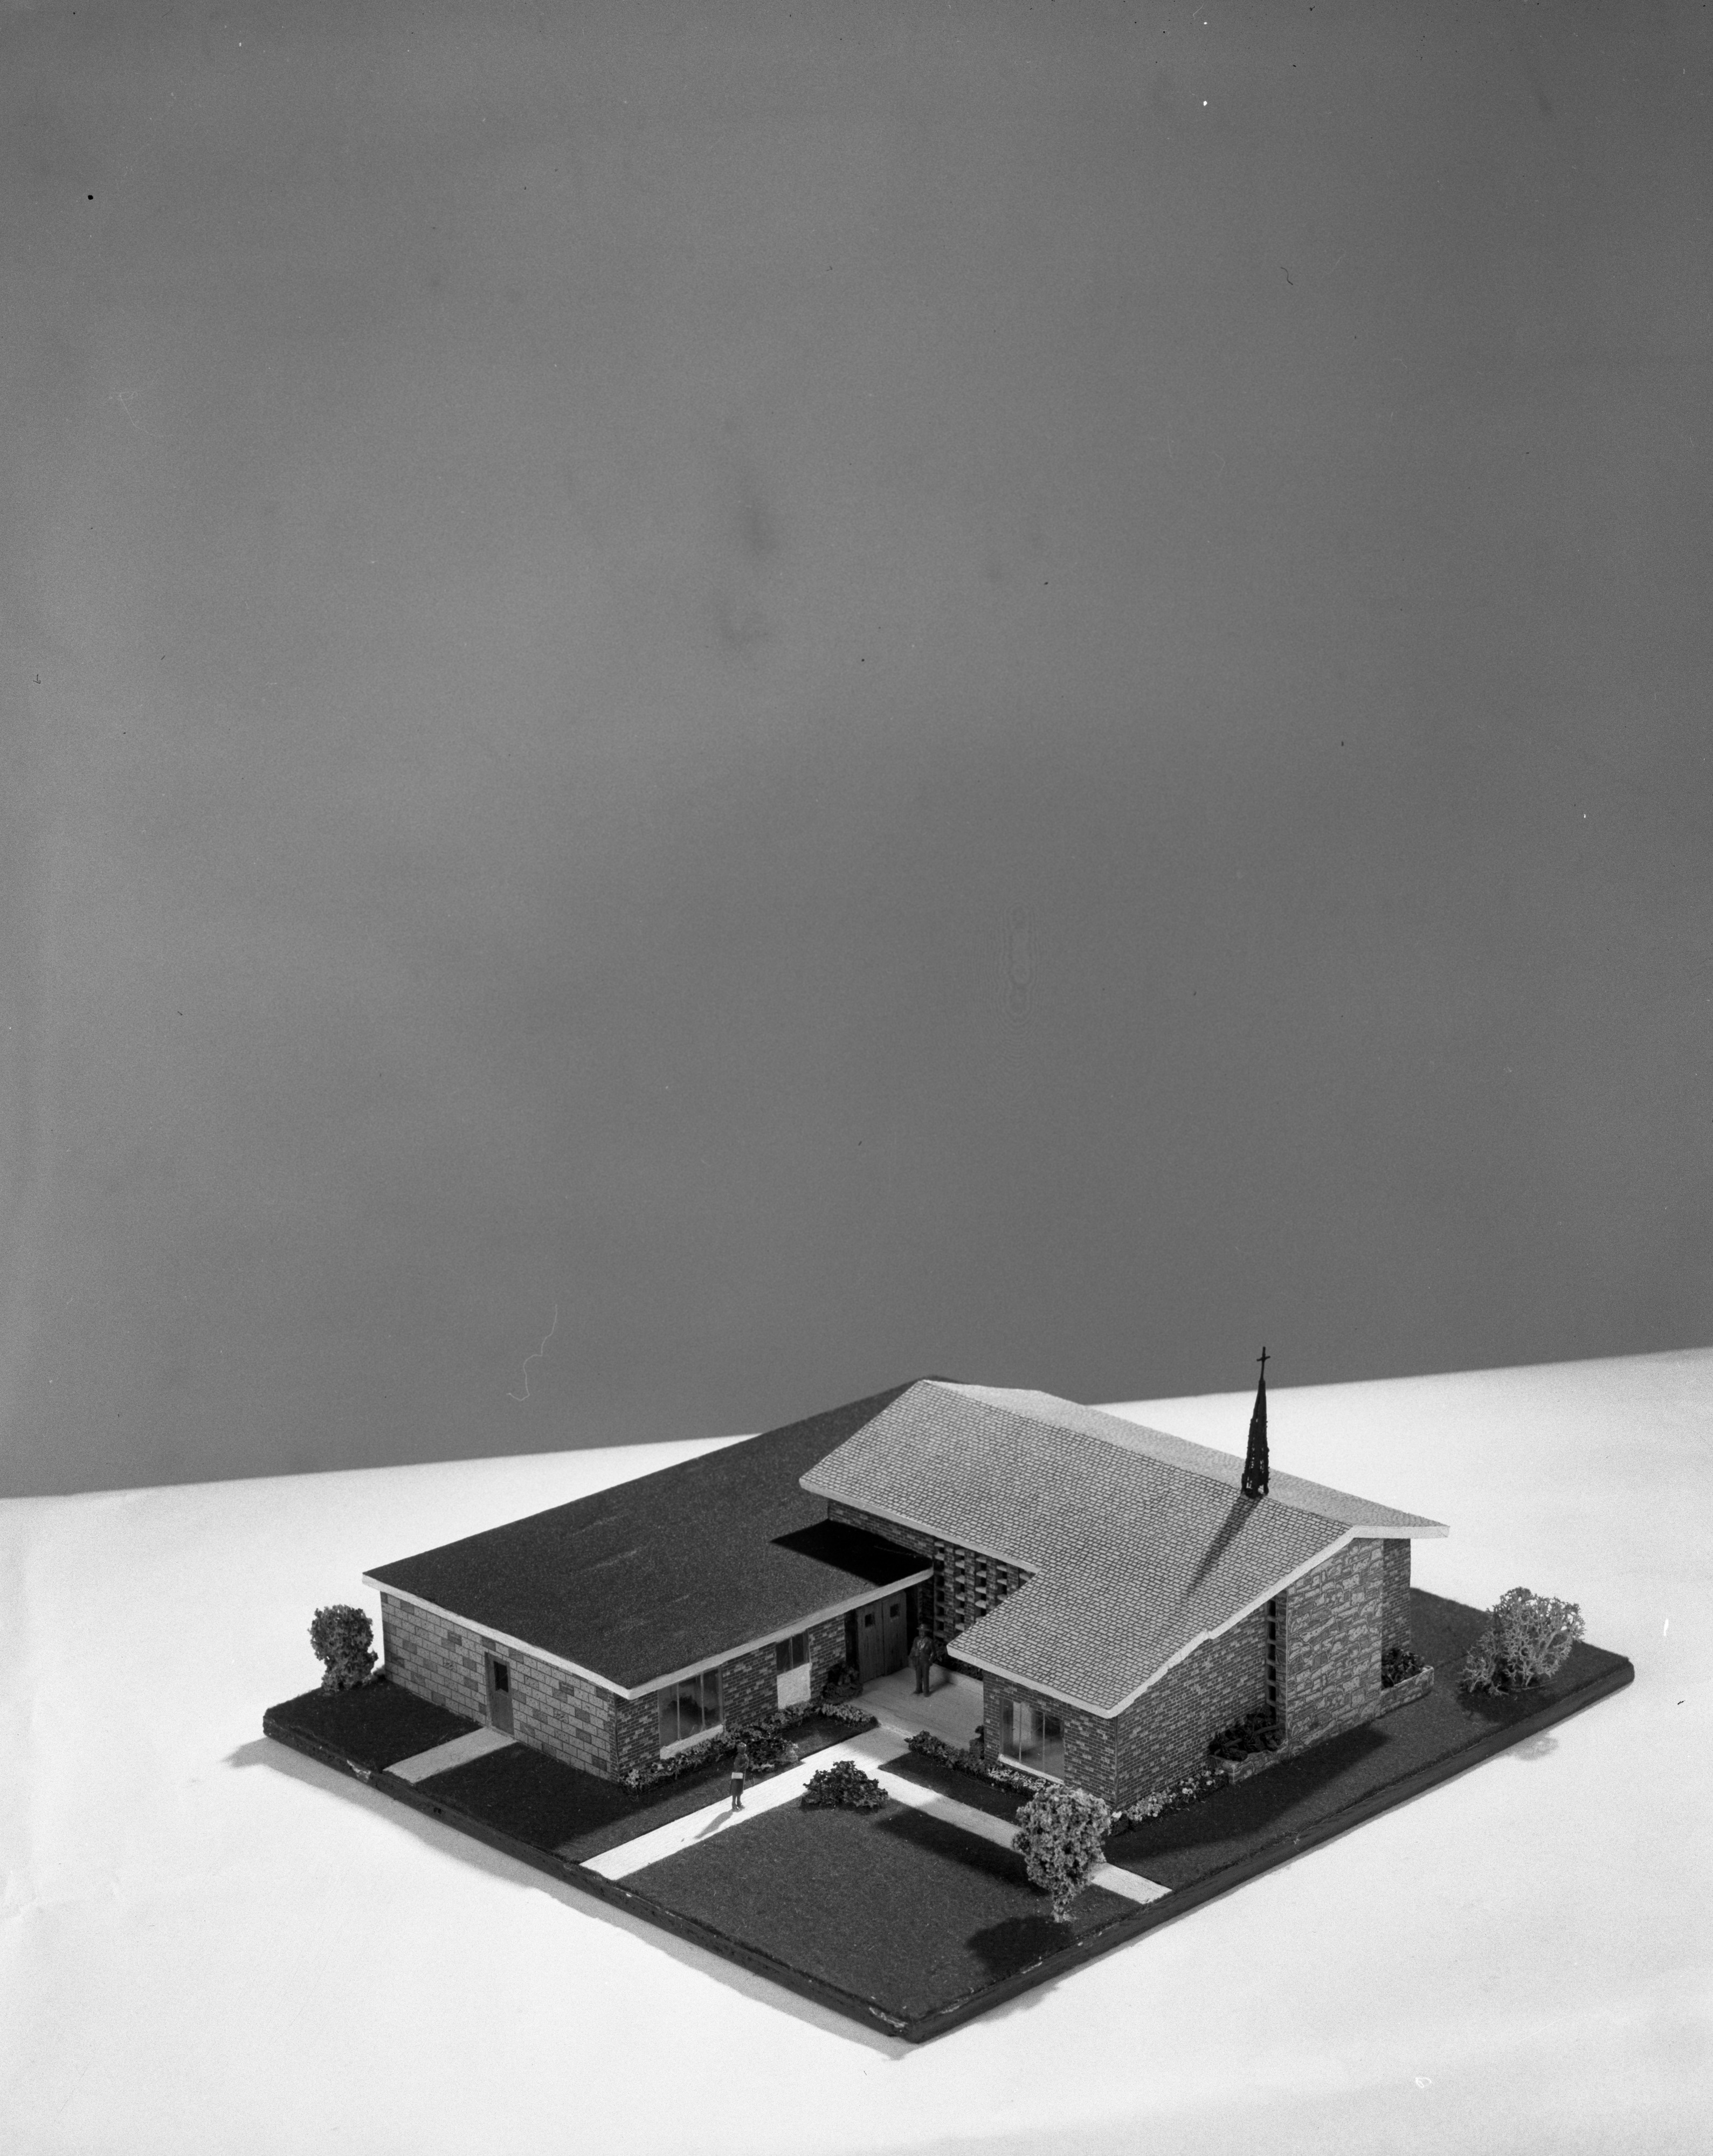 Model of New St. Mark American Lutheran Church, Ypsilanti, September 1958 image